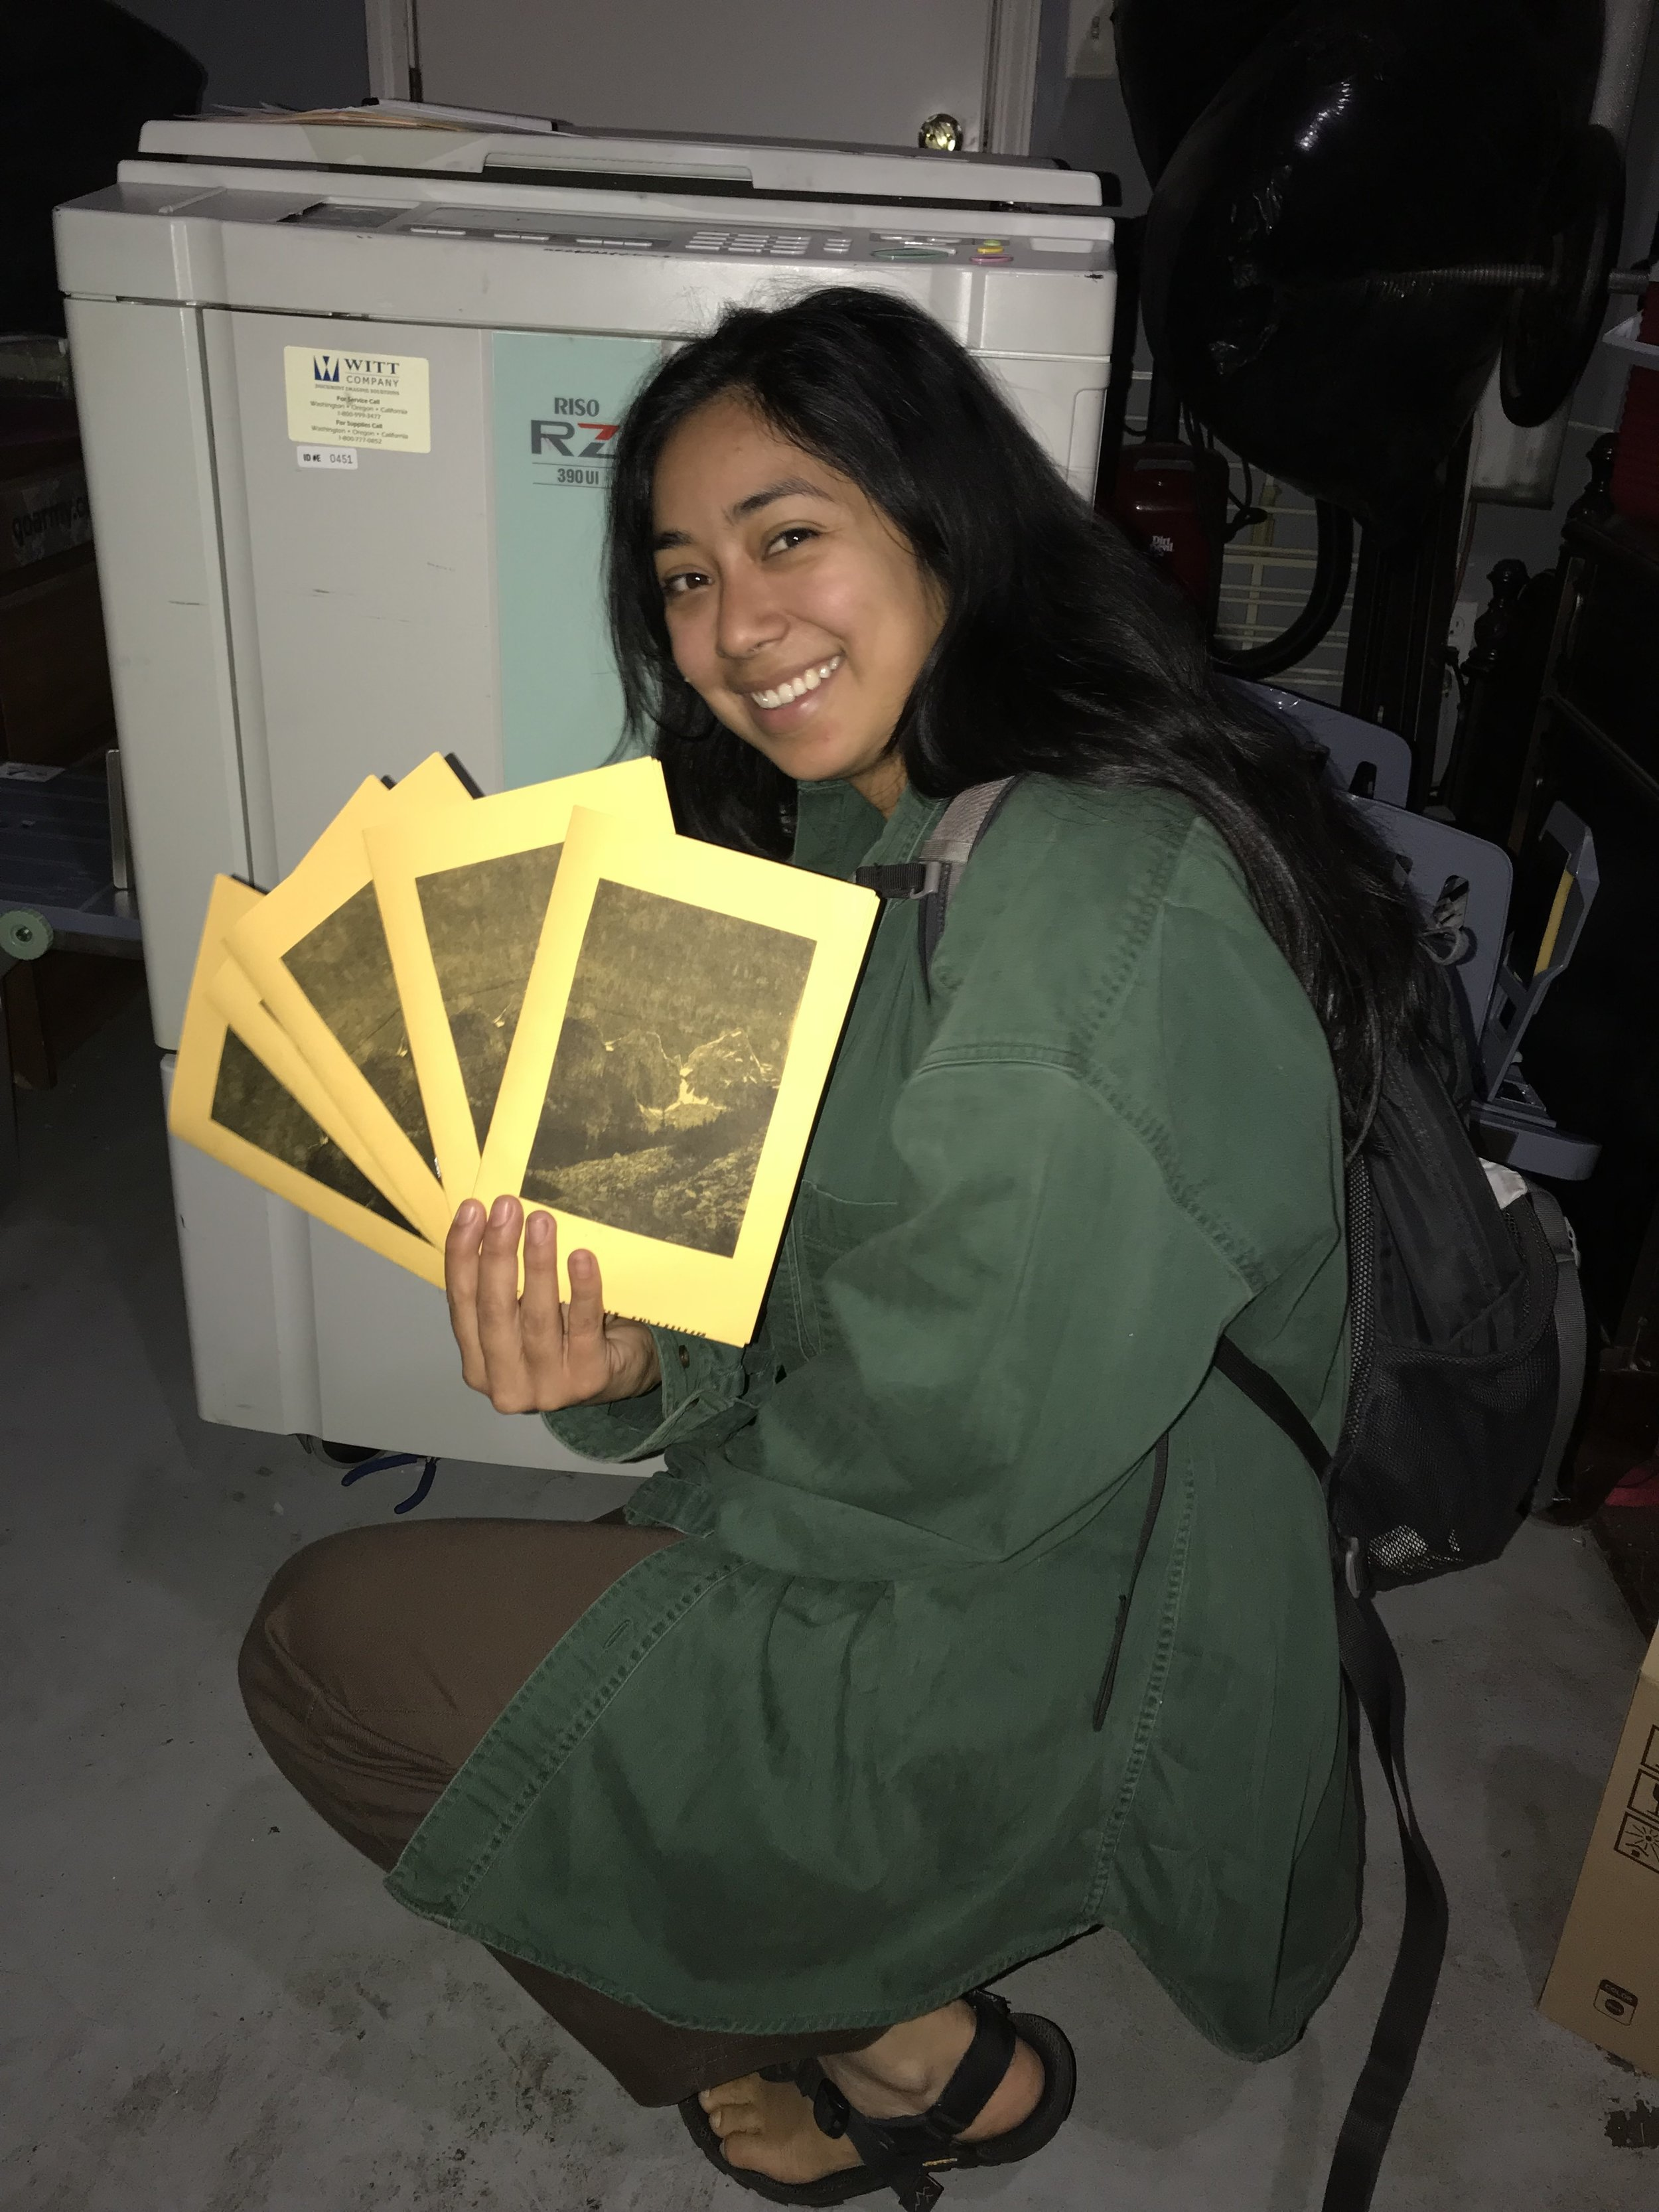 First customer: Our friend Bree came down from Yosemite to print her first zine.